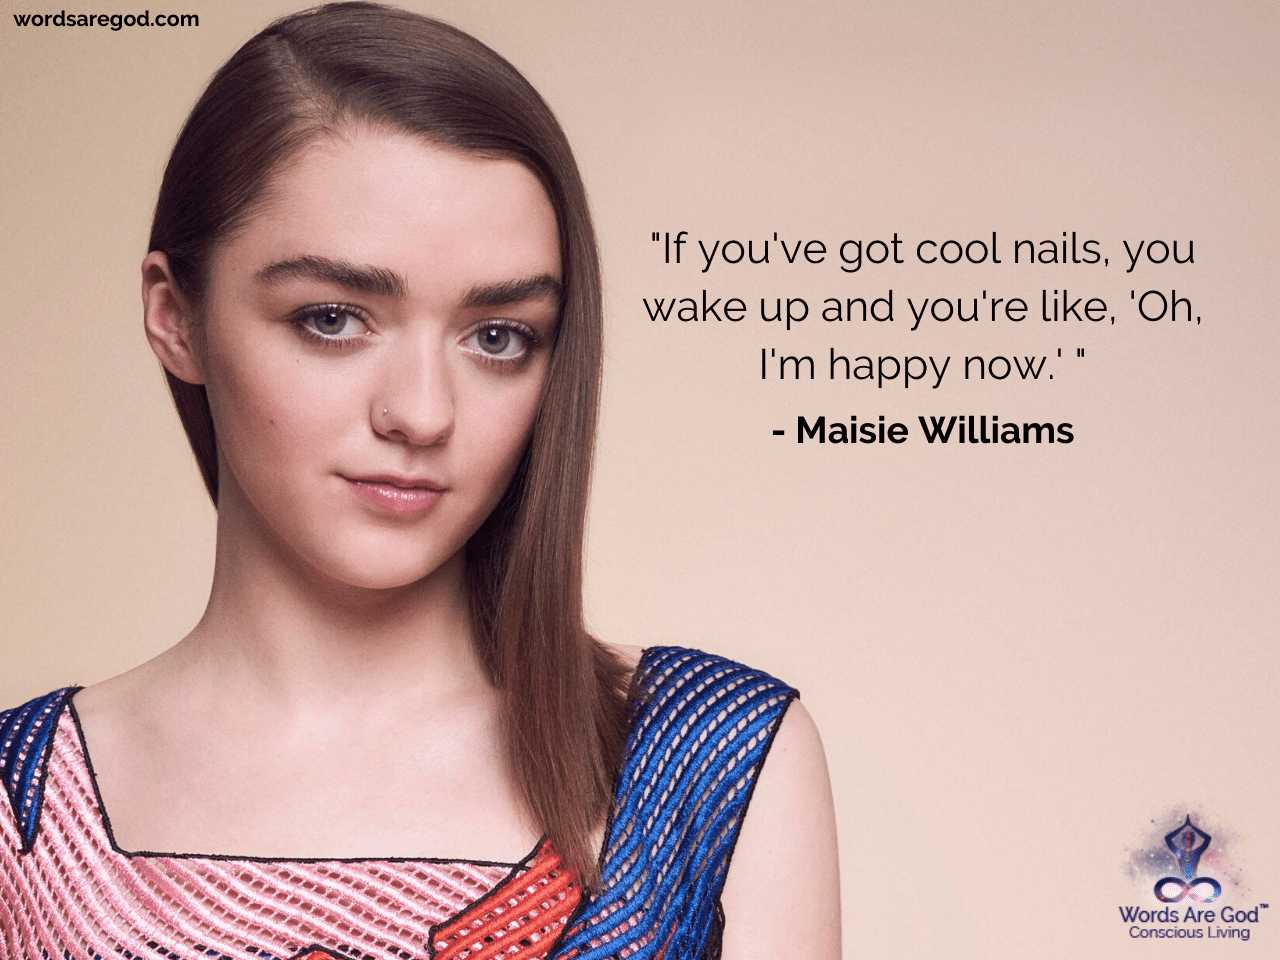 Maisie Williams Motivational Quotes by Maisie Williams